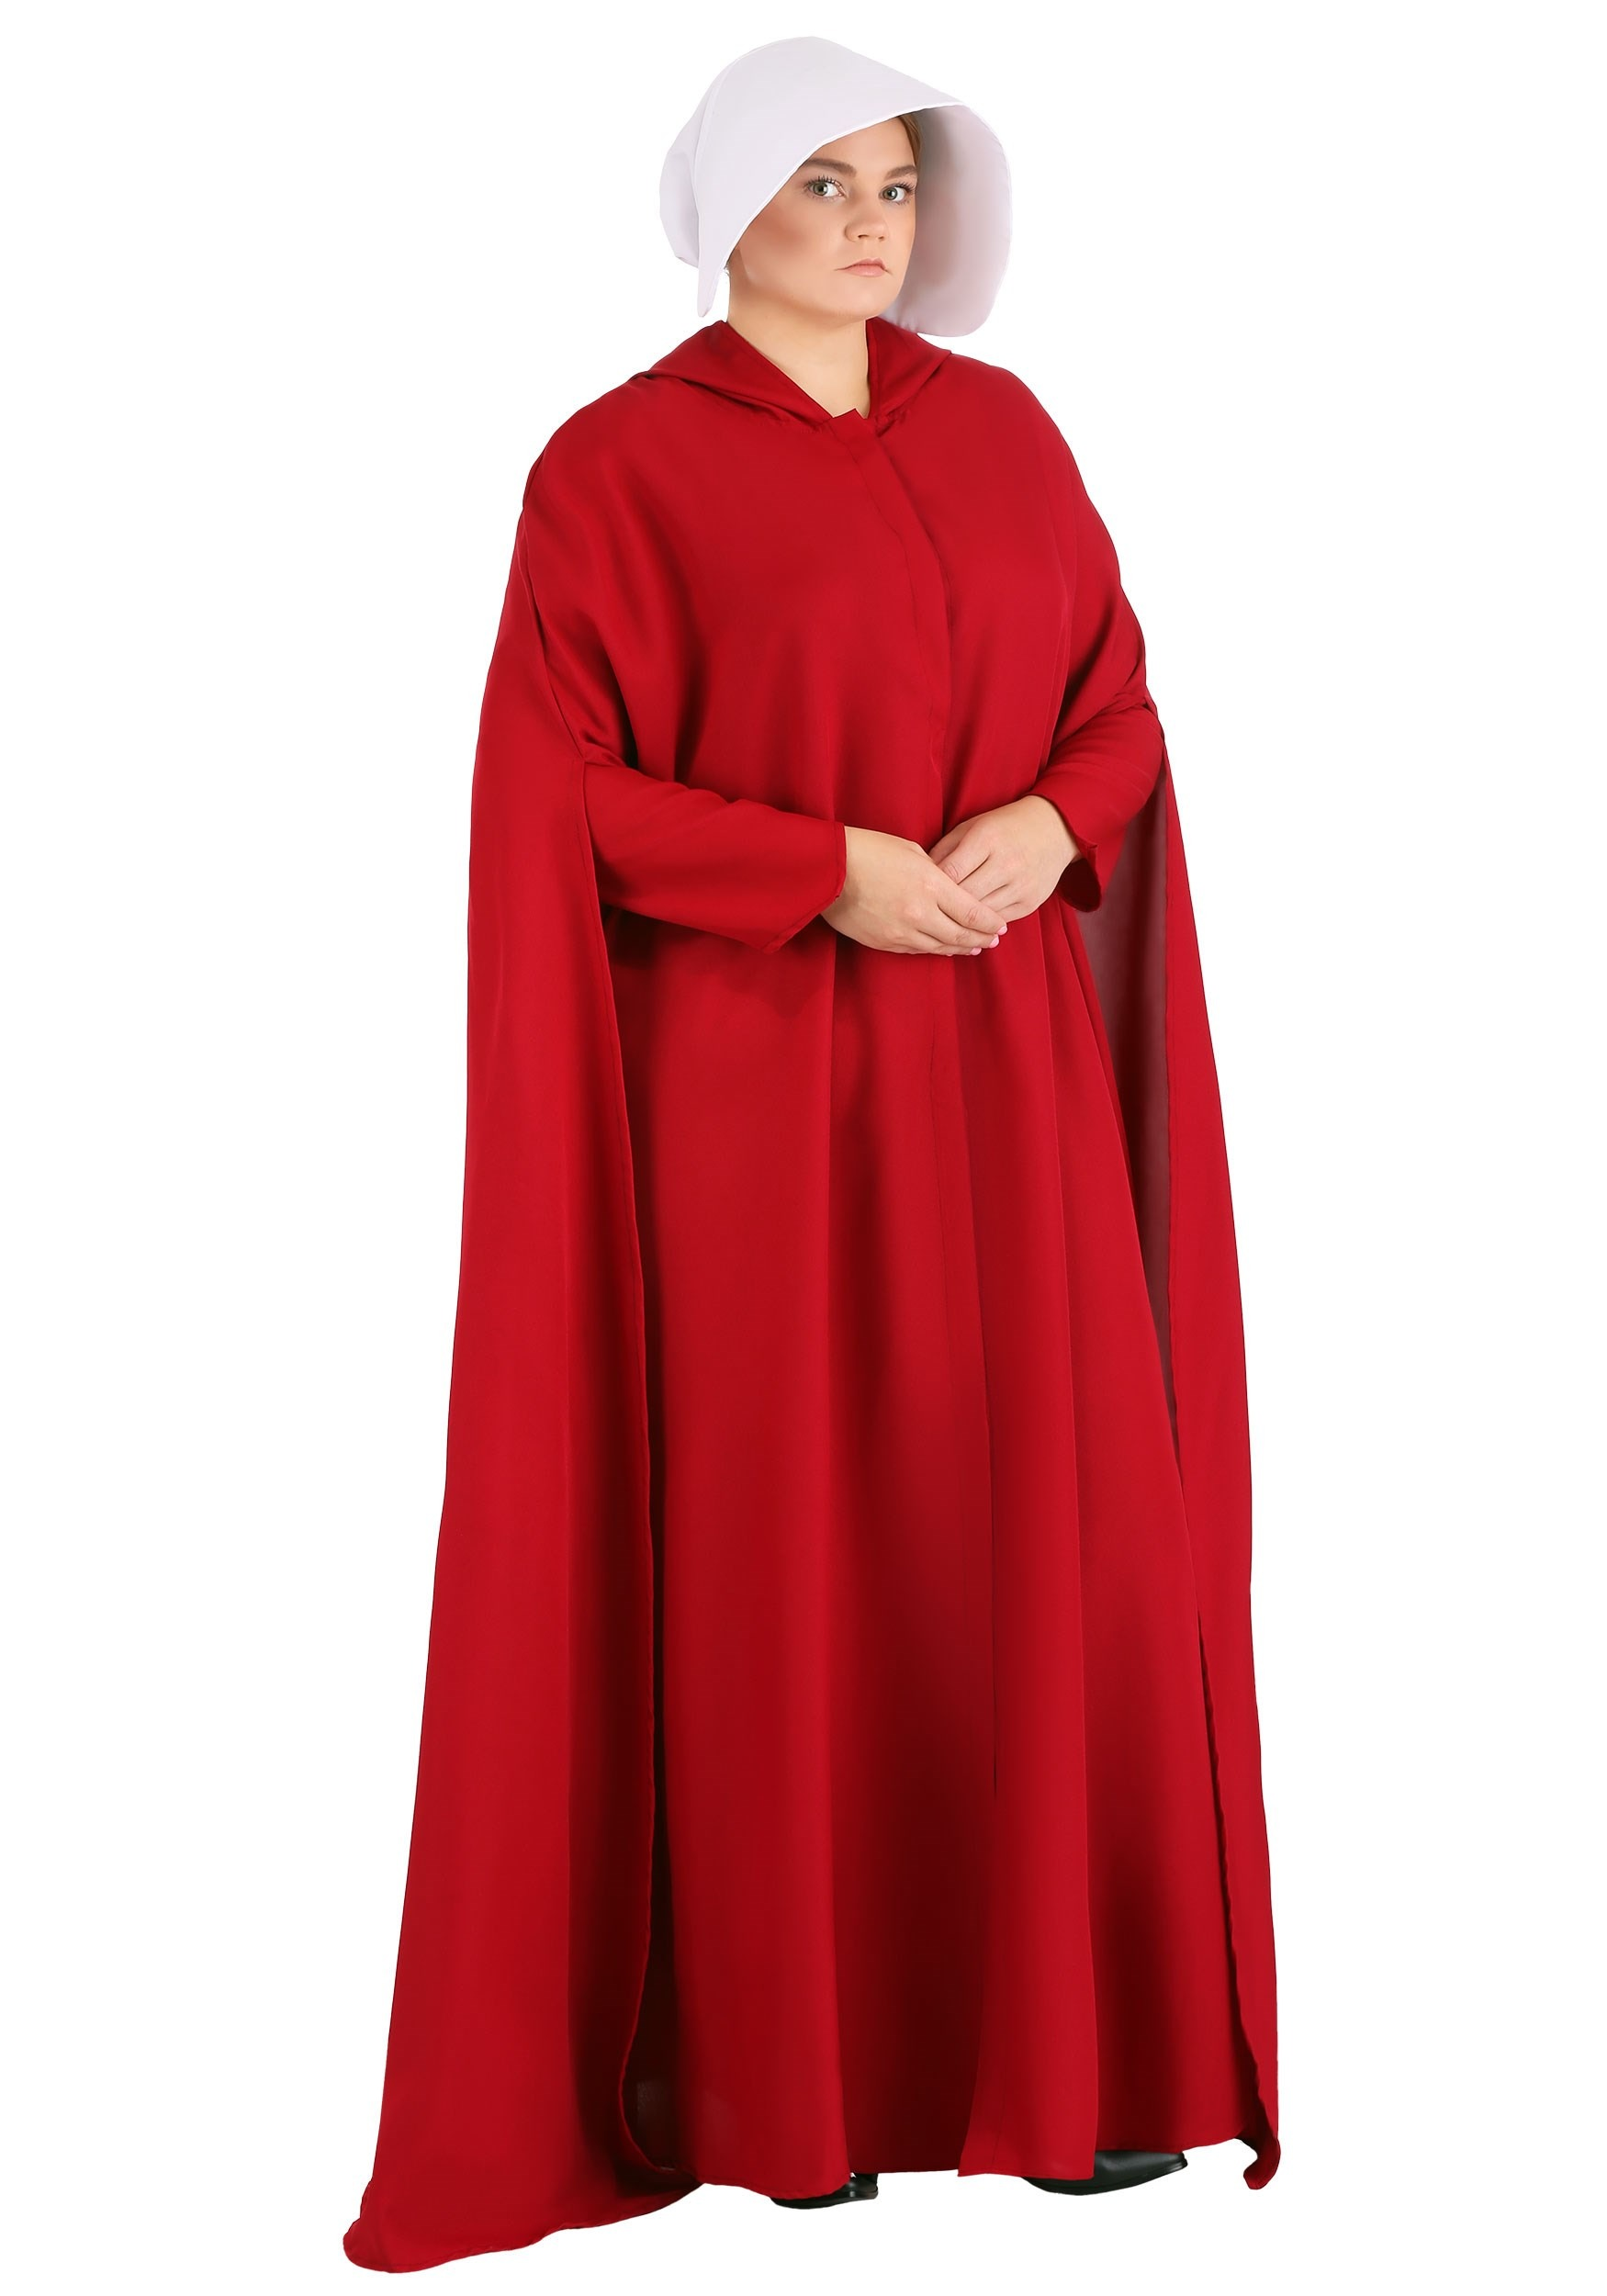 Plus Size Handmaid's Tale Costume for Women | Exclusive